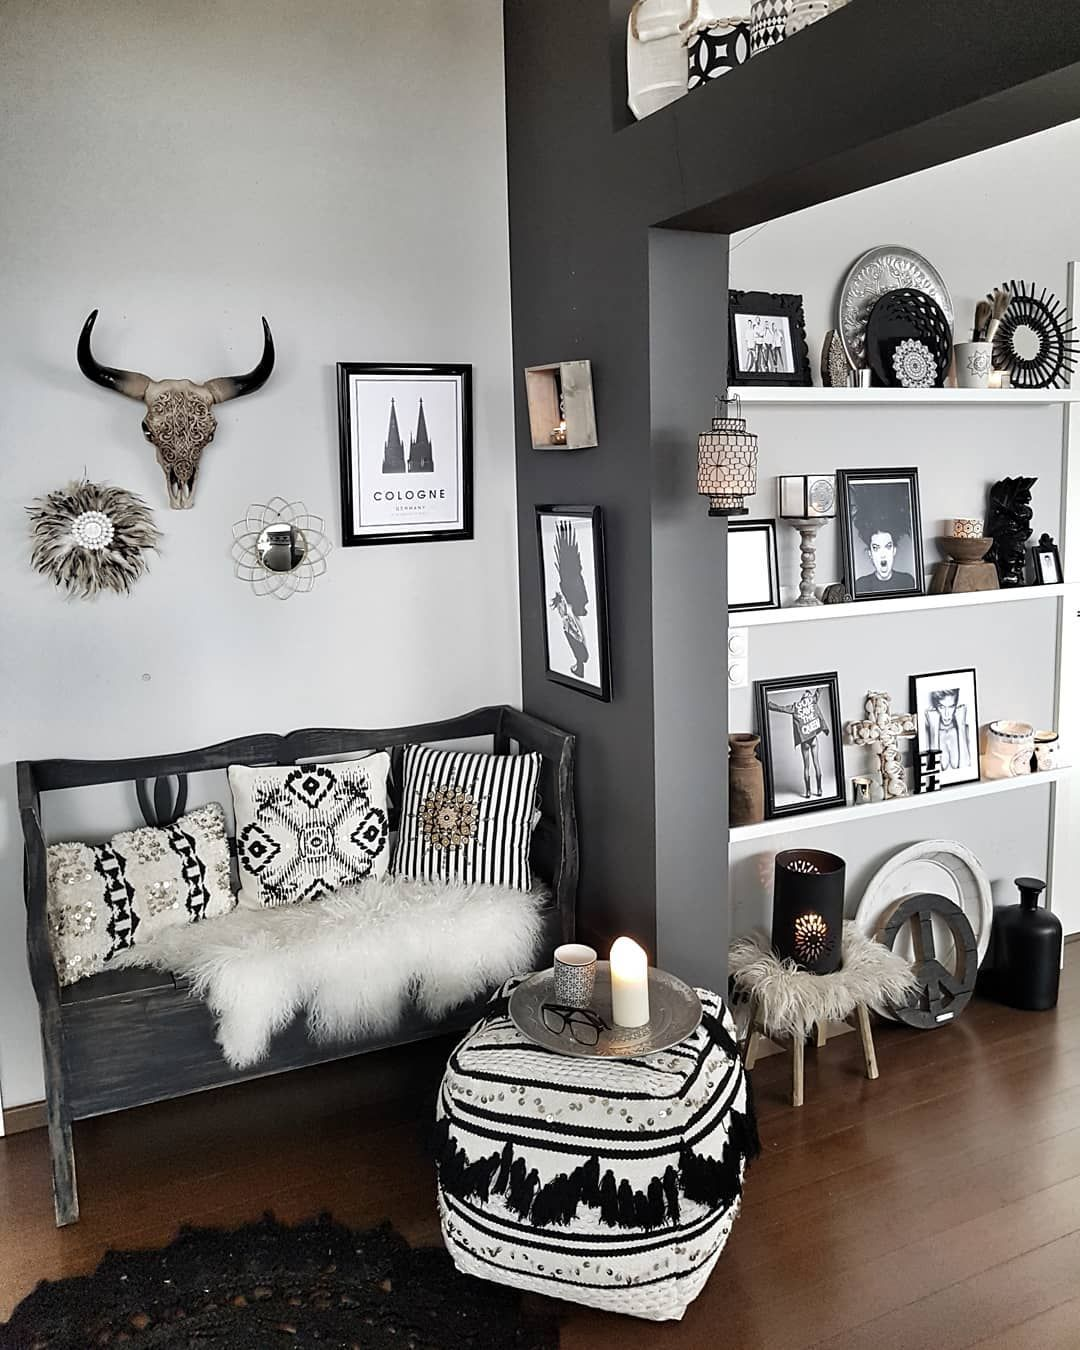 Best Black And White Bohemian 1 Eclectic Feel Of Decor Cologne Artwork Animal Head Scandinavian 400 x 300